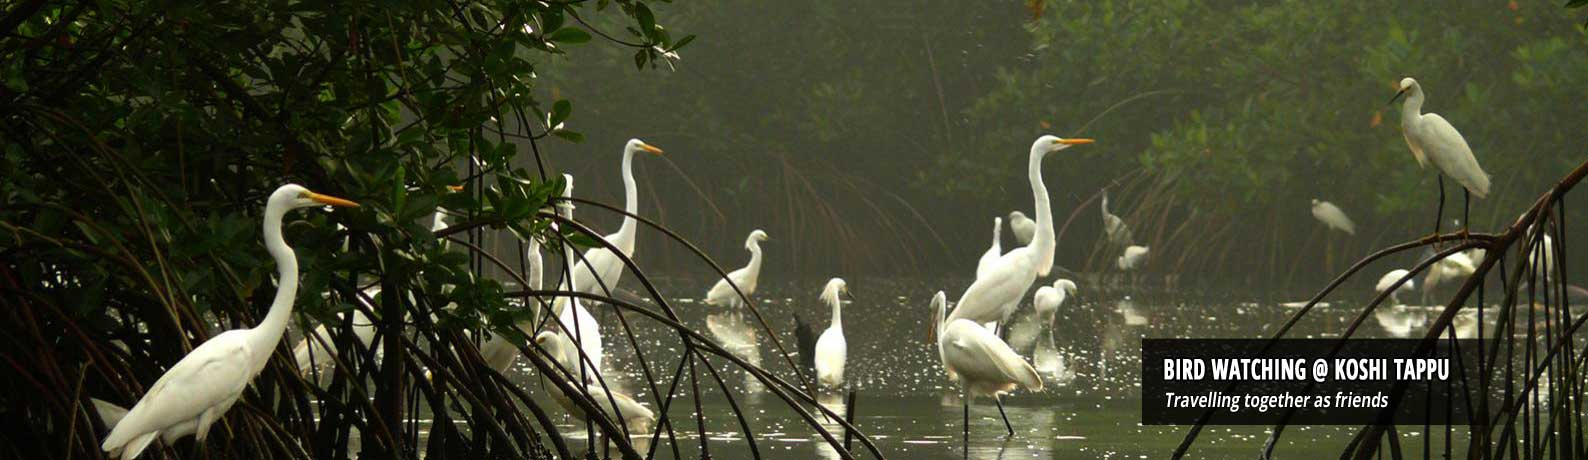 Bird Watching - Koshi Tappu